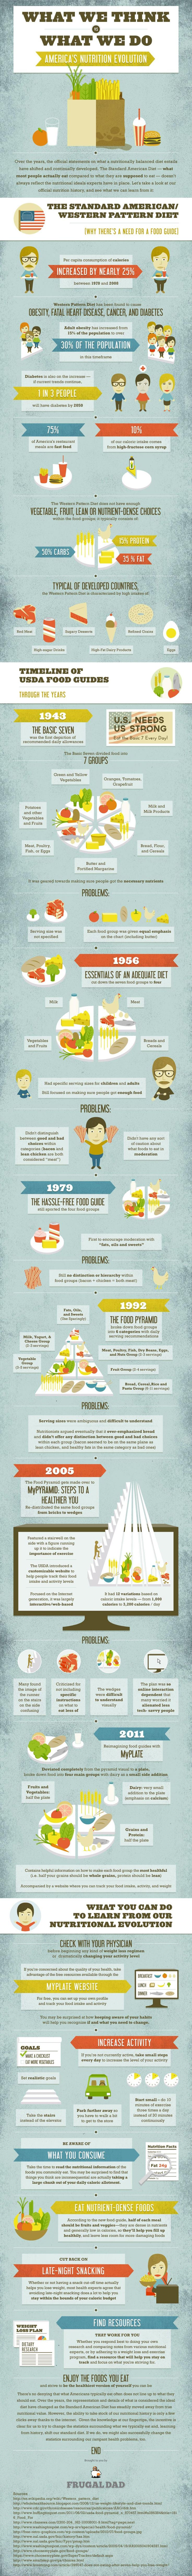 What We Think vs What We Do ( America's #Nutrition Evolution)